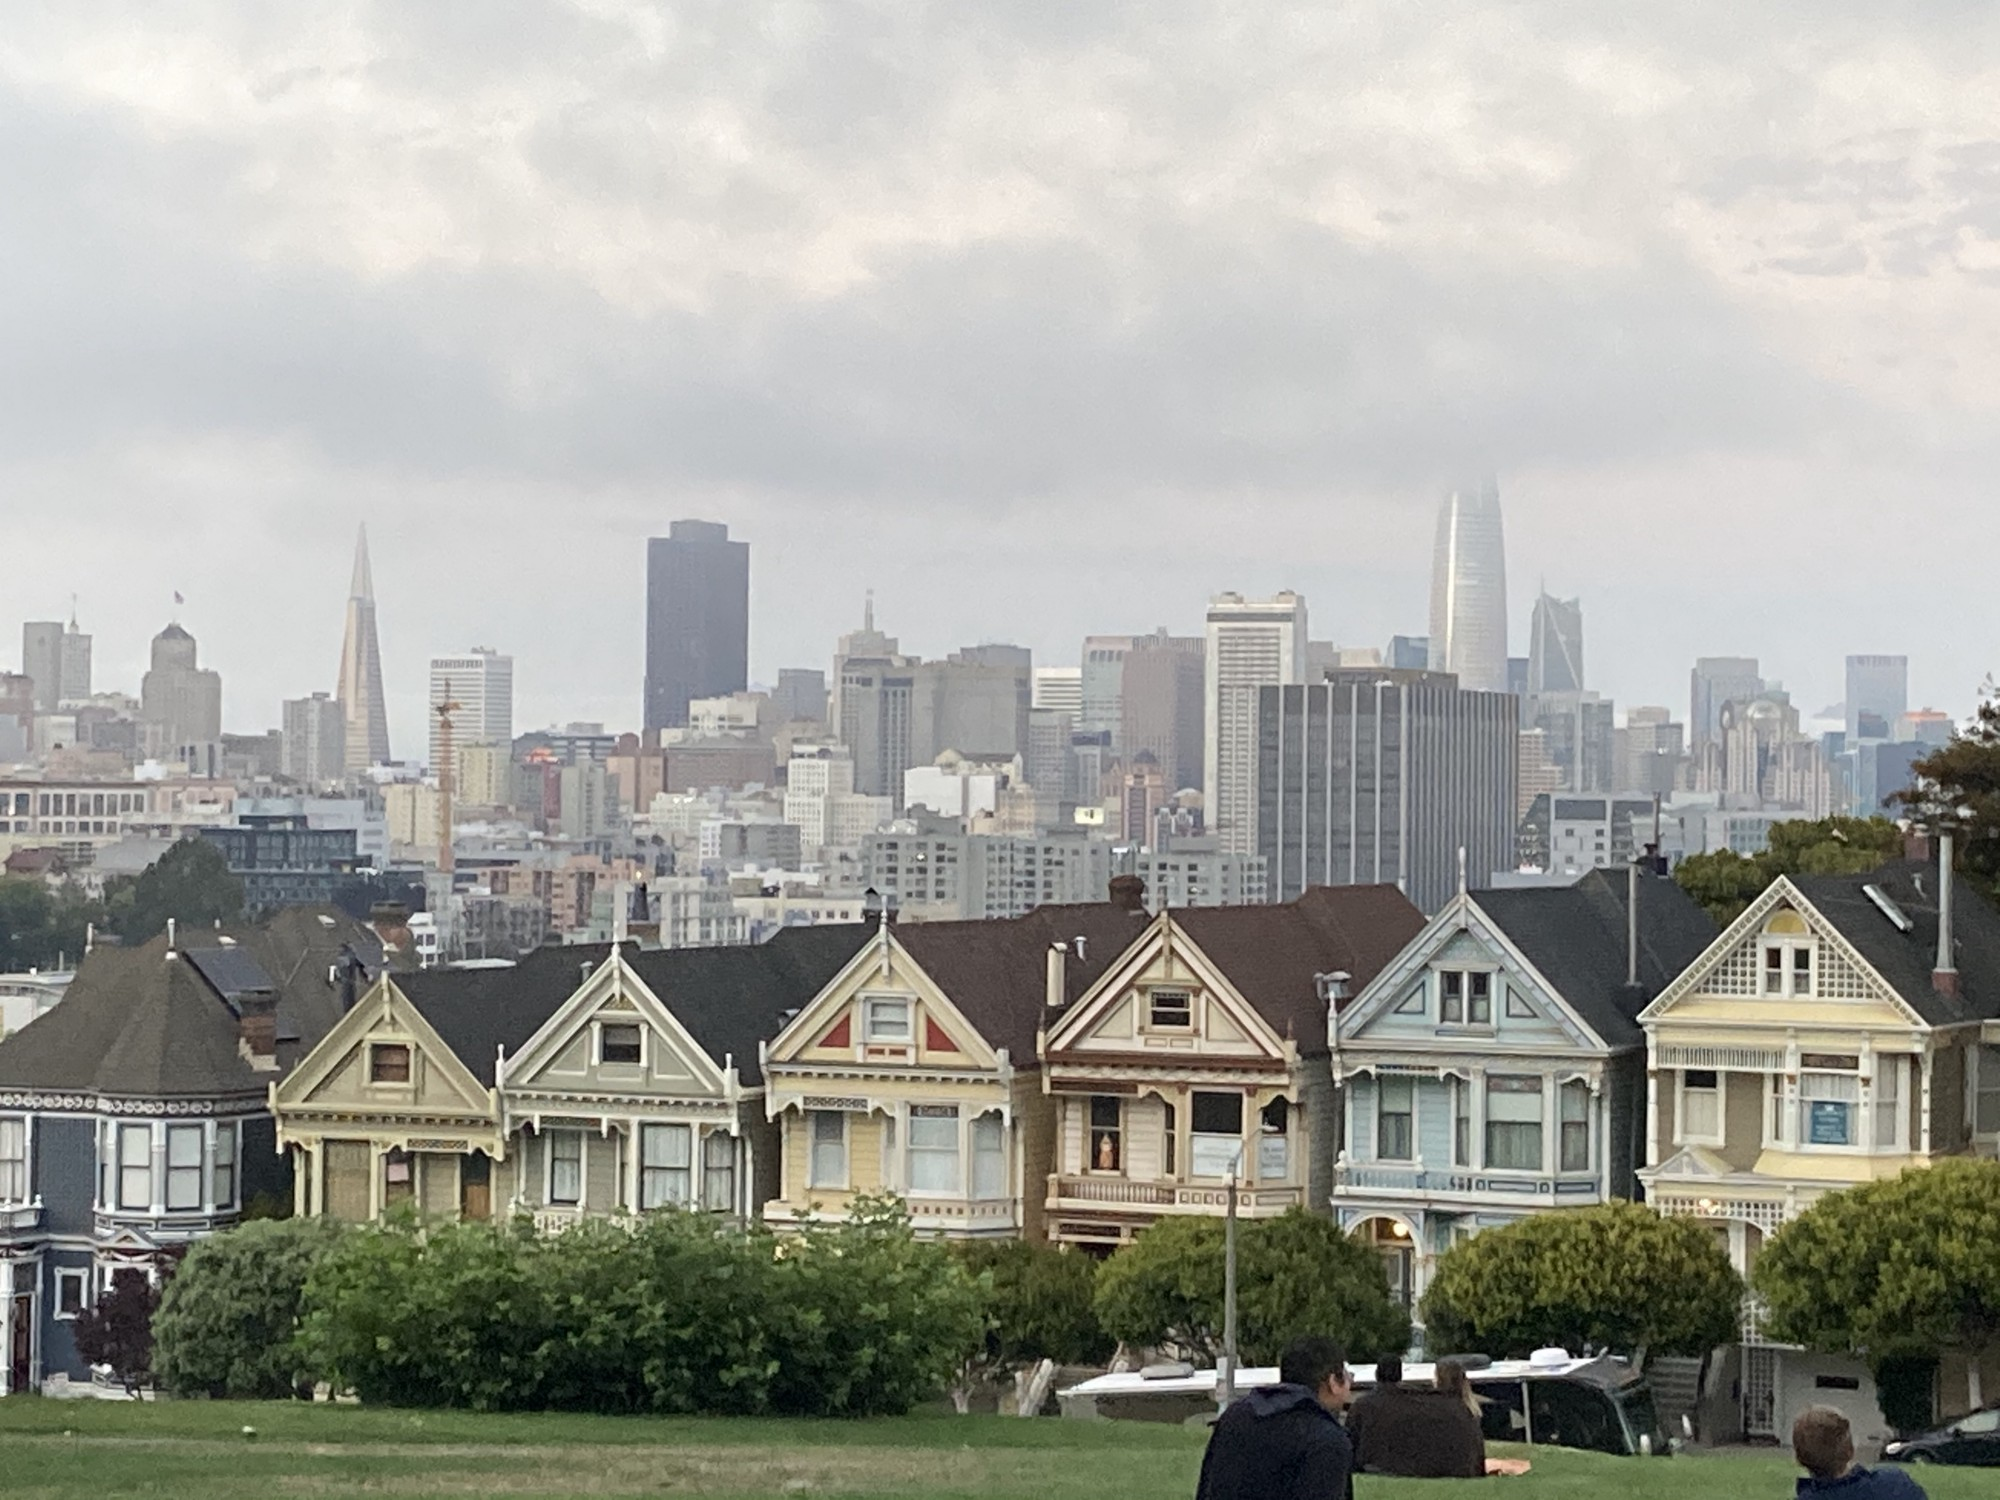 San Francisco's iconic Victorians are surrounded, as always, by the backdrop of the City under foggy skies full of foreboding.